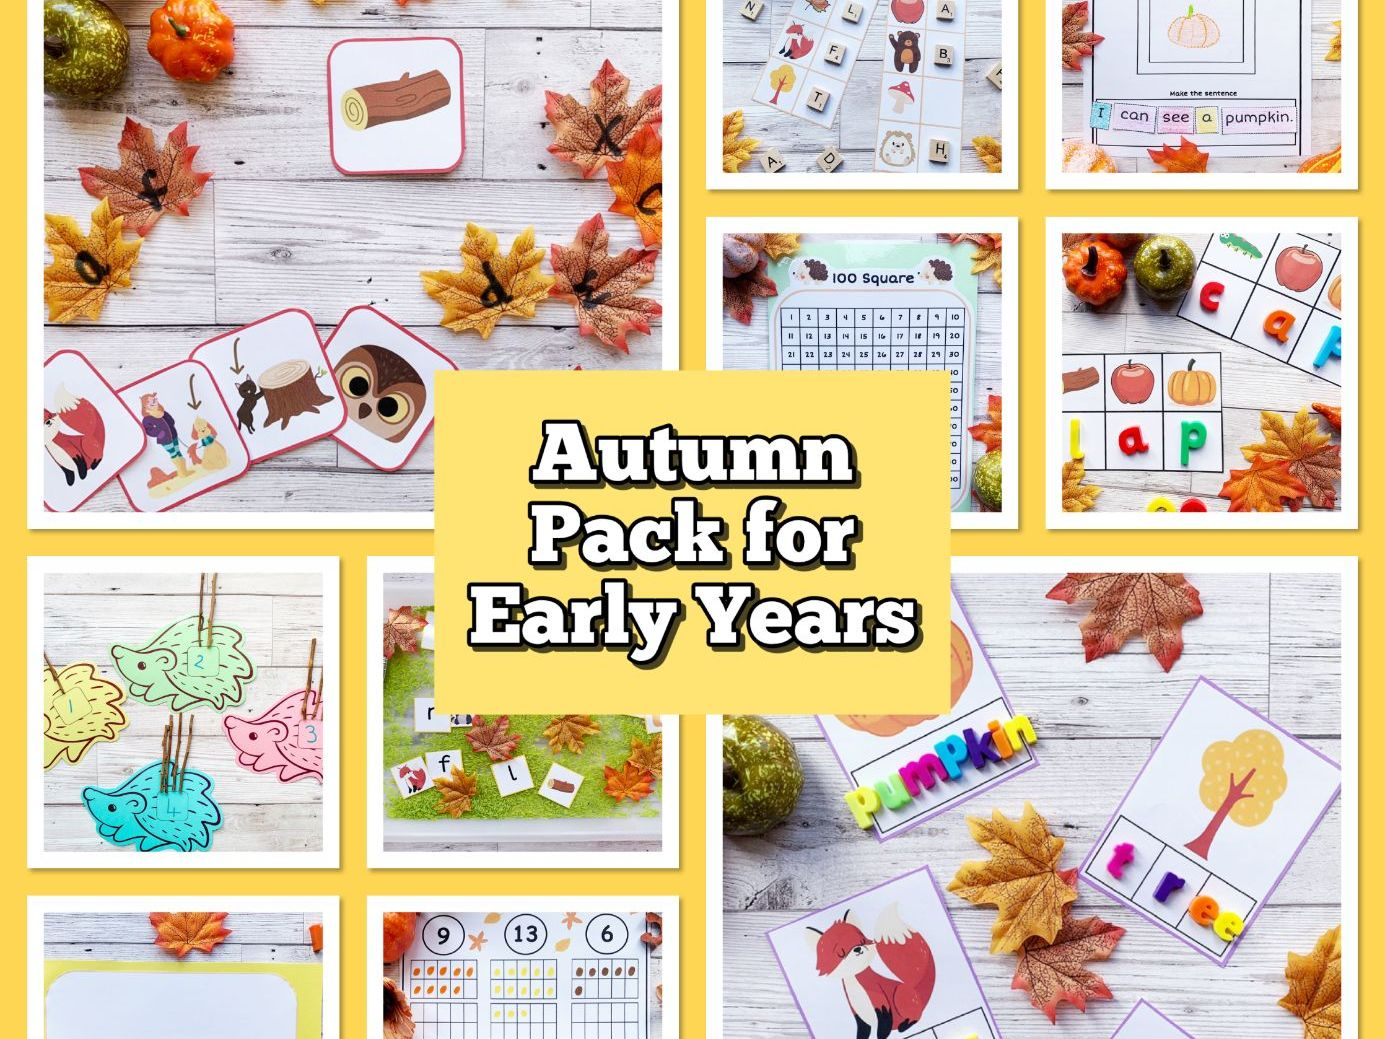 Autumn Pack for Early Years